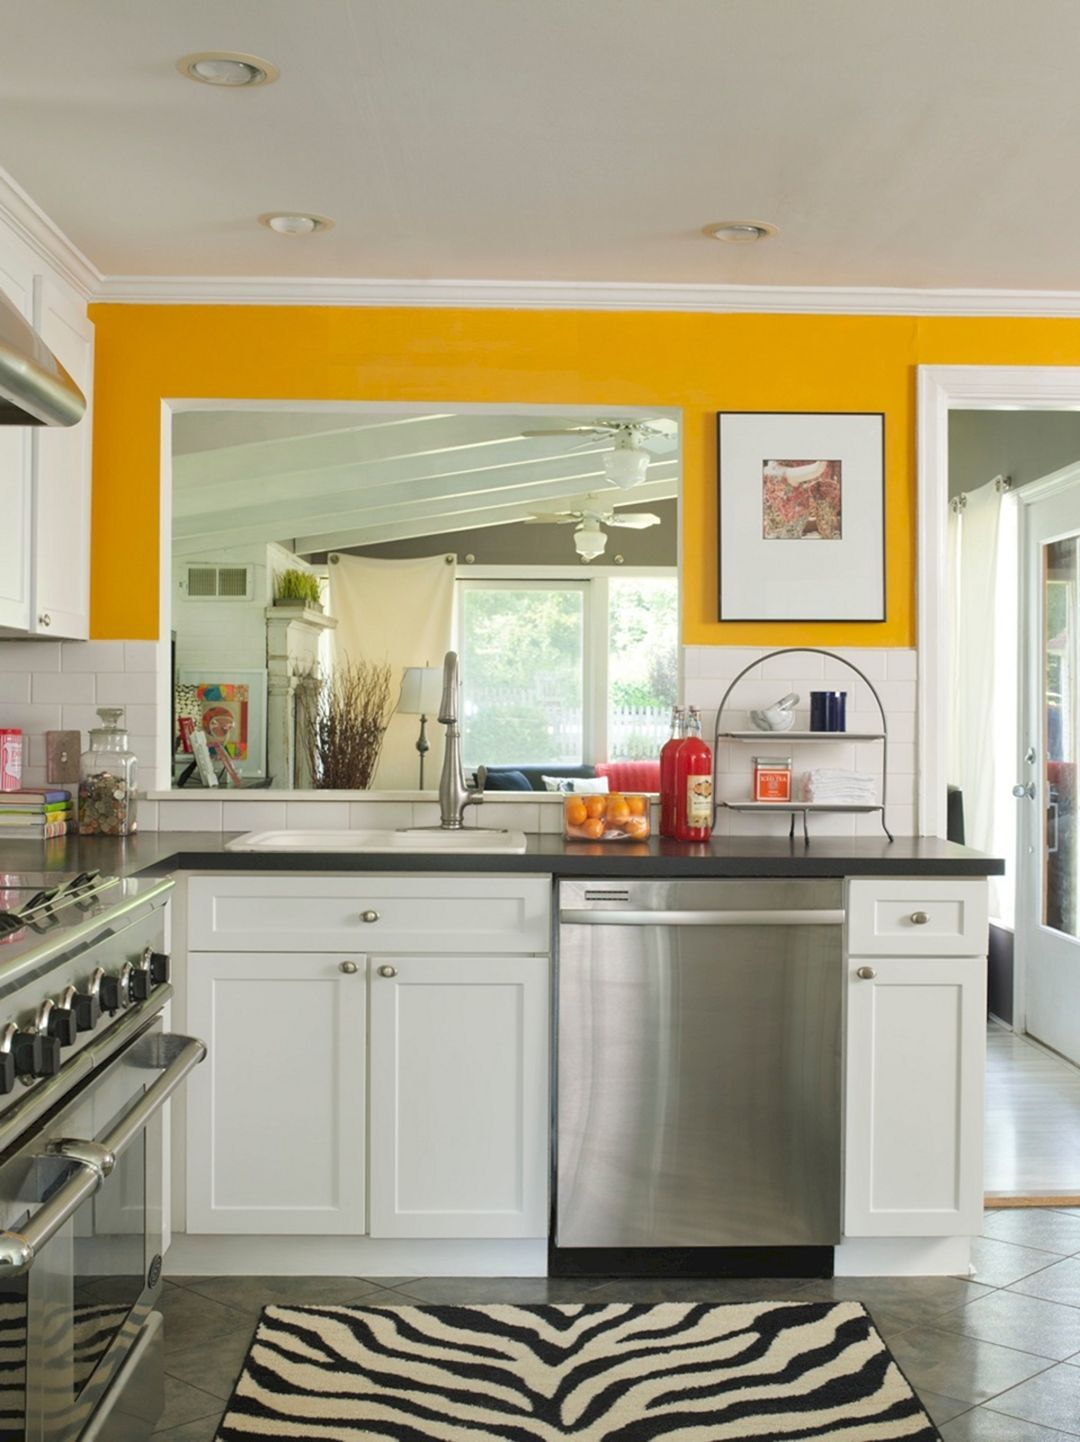 20+ Best Modern Kitchen Paint Design Ideas For Small Space ...